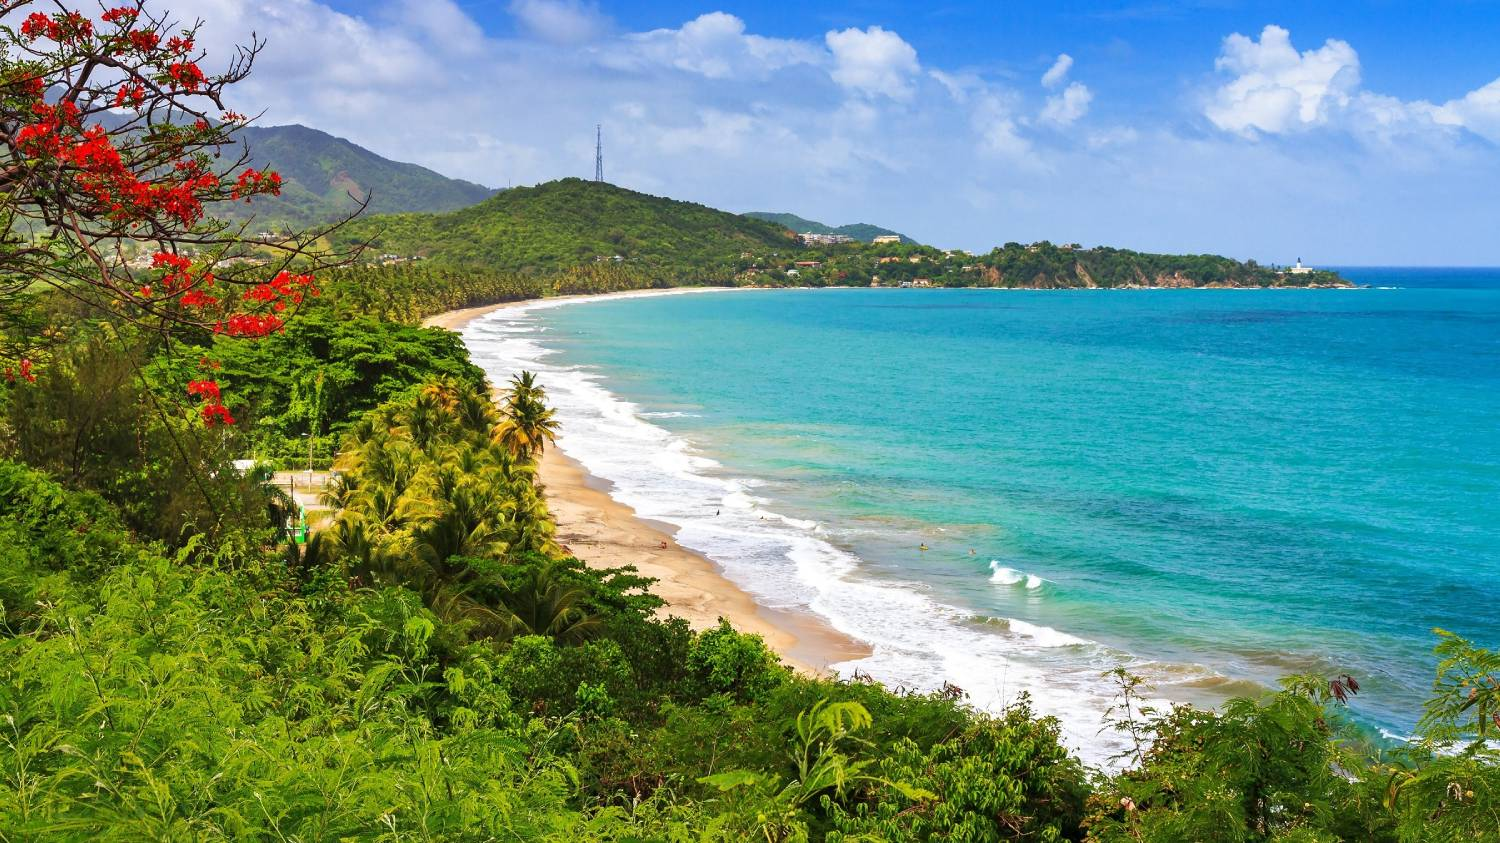 Puerto Rico - The Best Countries To Visit In Central America